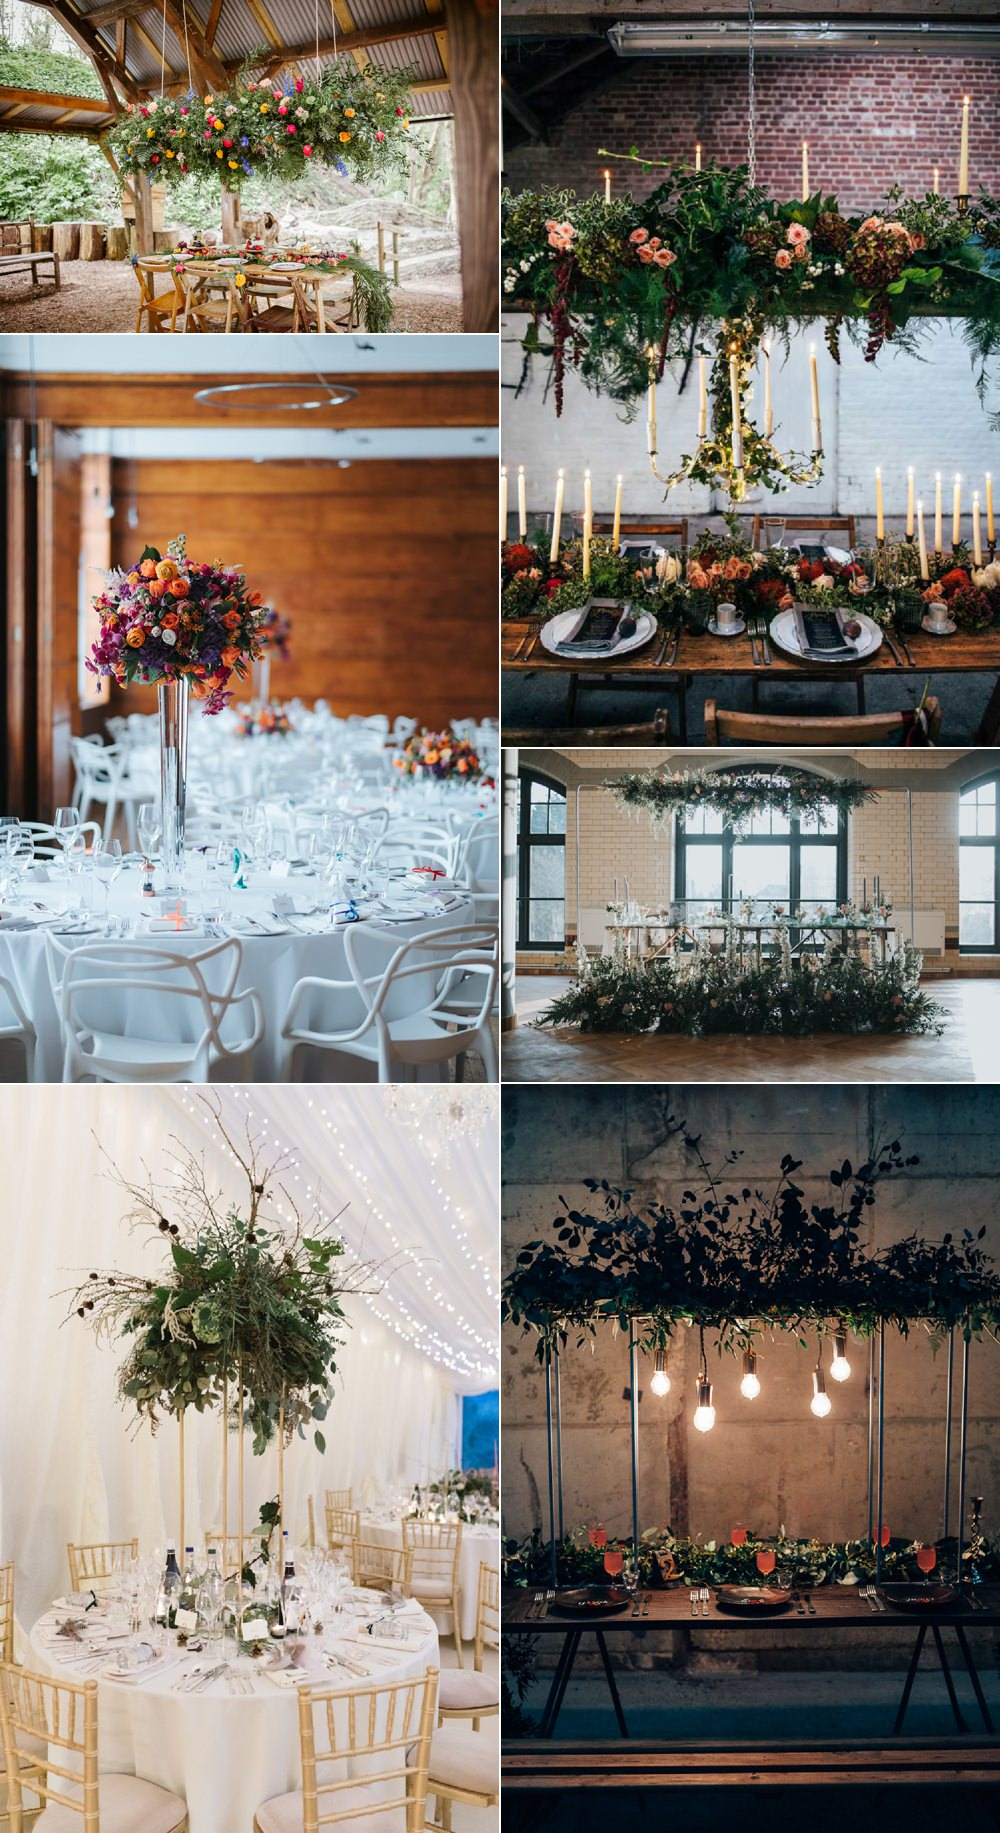 Table Centrepieces Suspended Hanging Floral Flower Ideas Wedding Inspiration